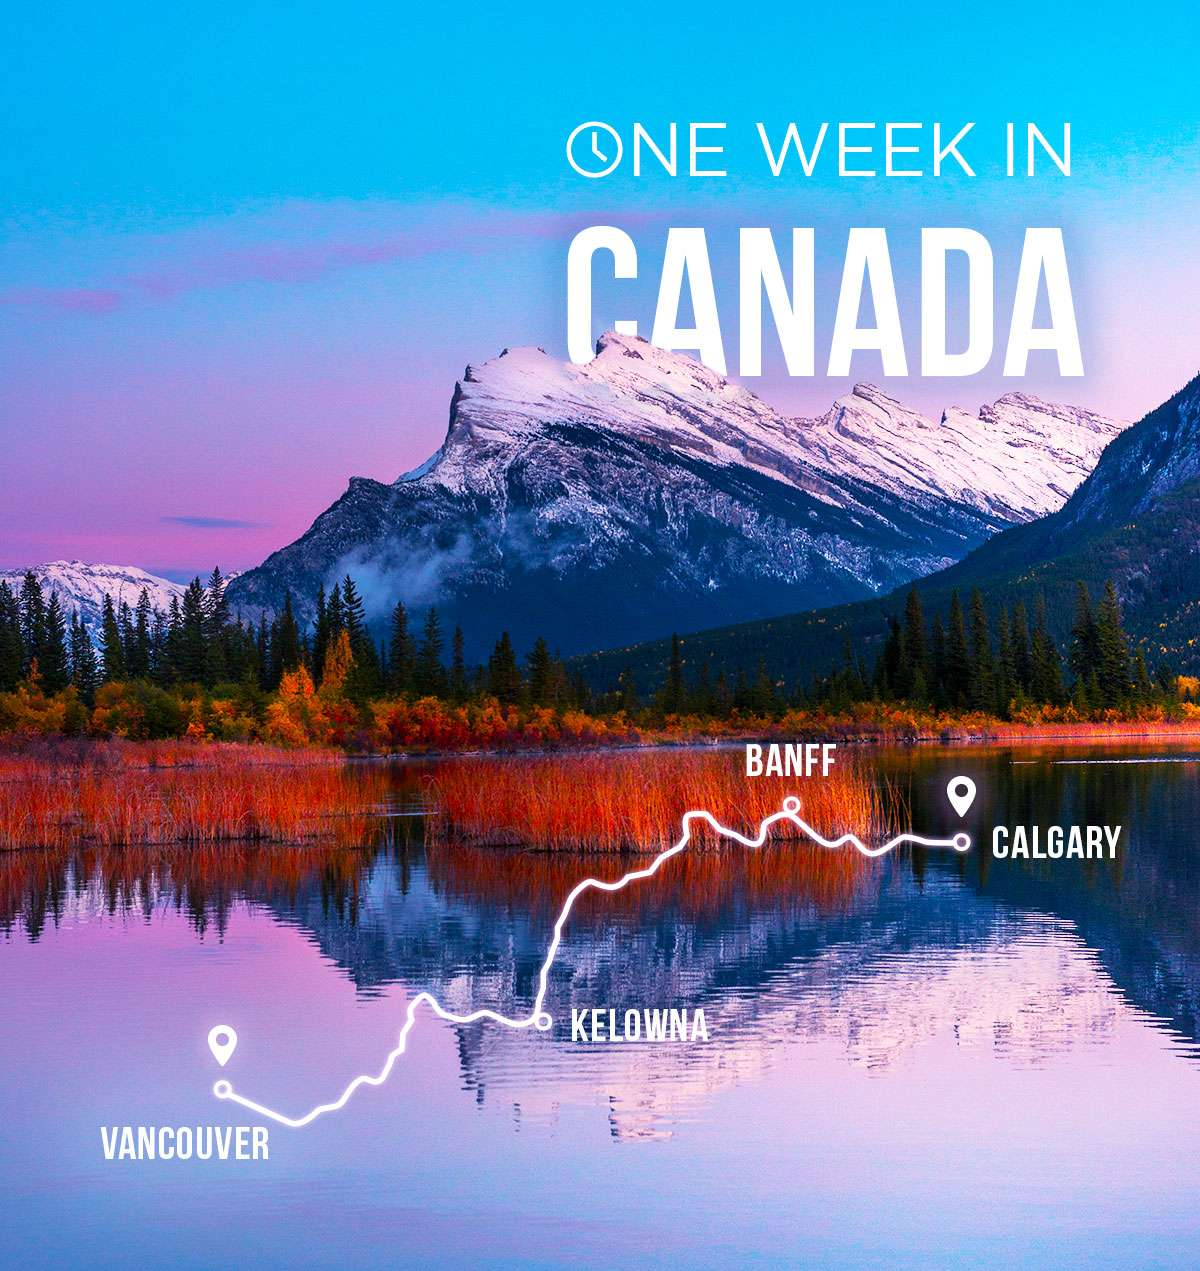 Spend one week in Canada and earn up to 20,000 miles/points!